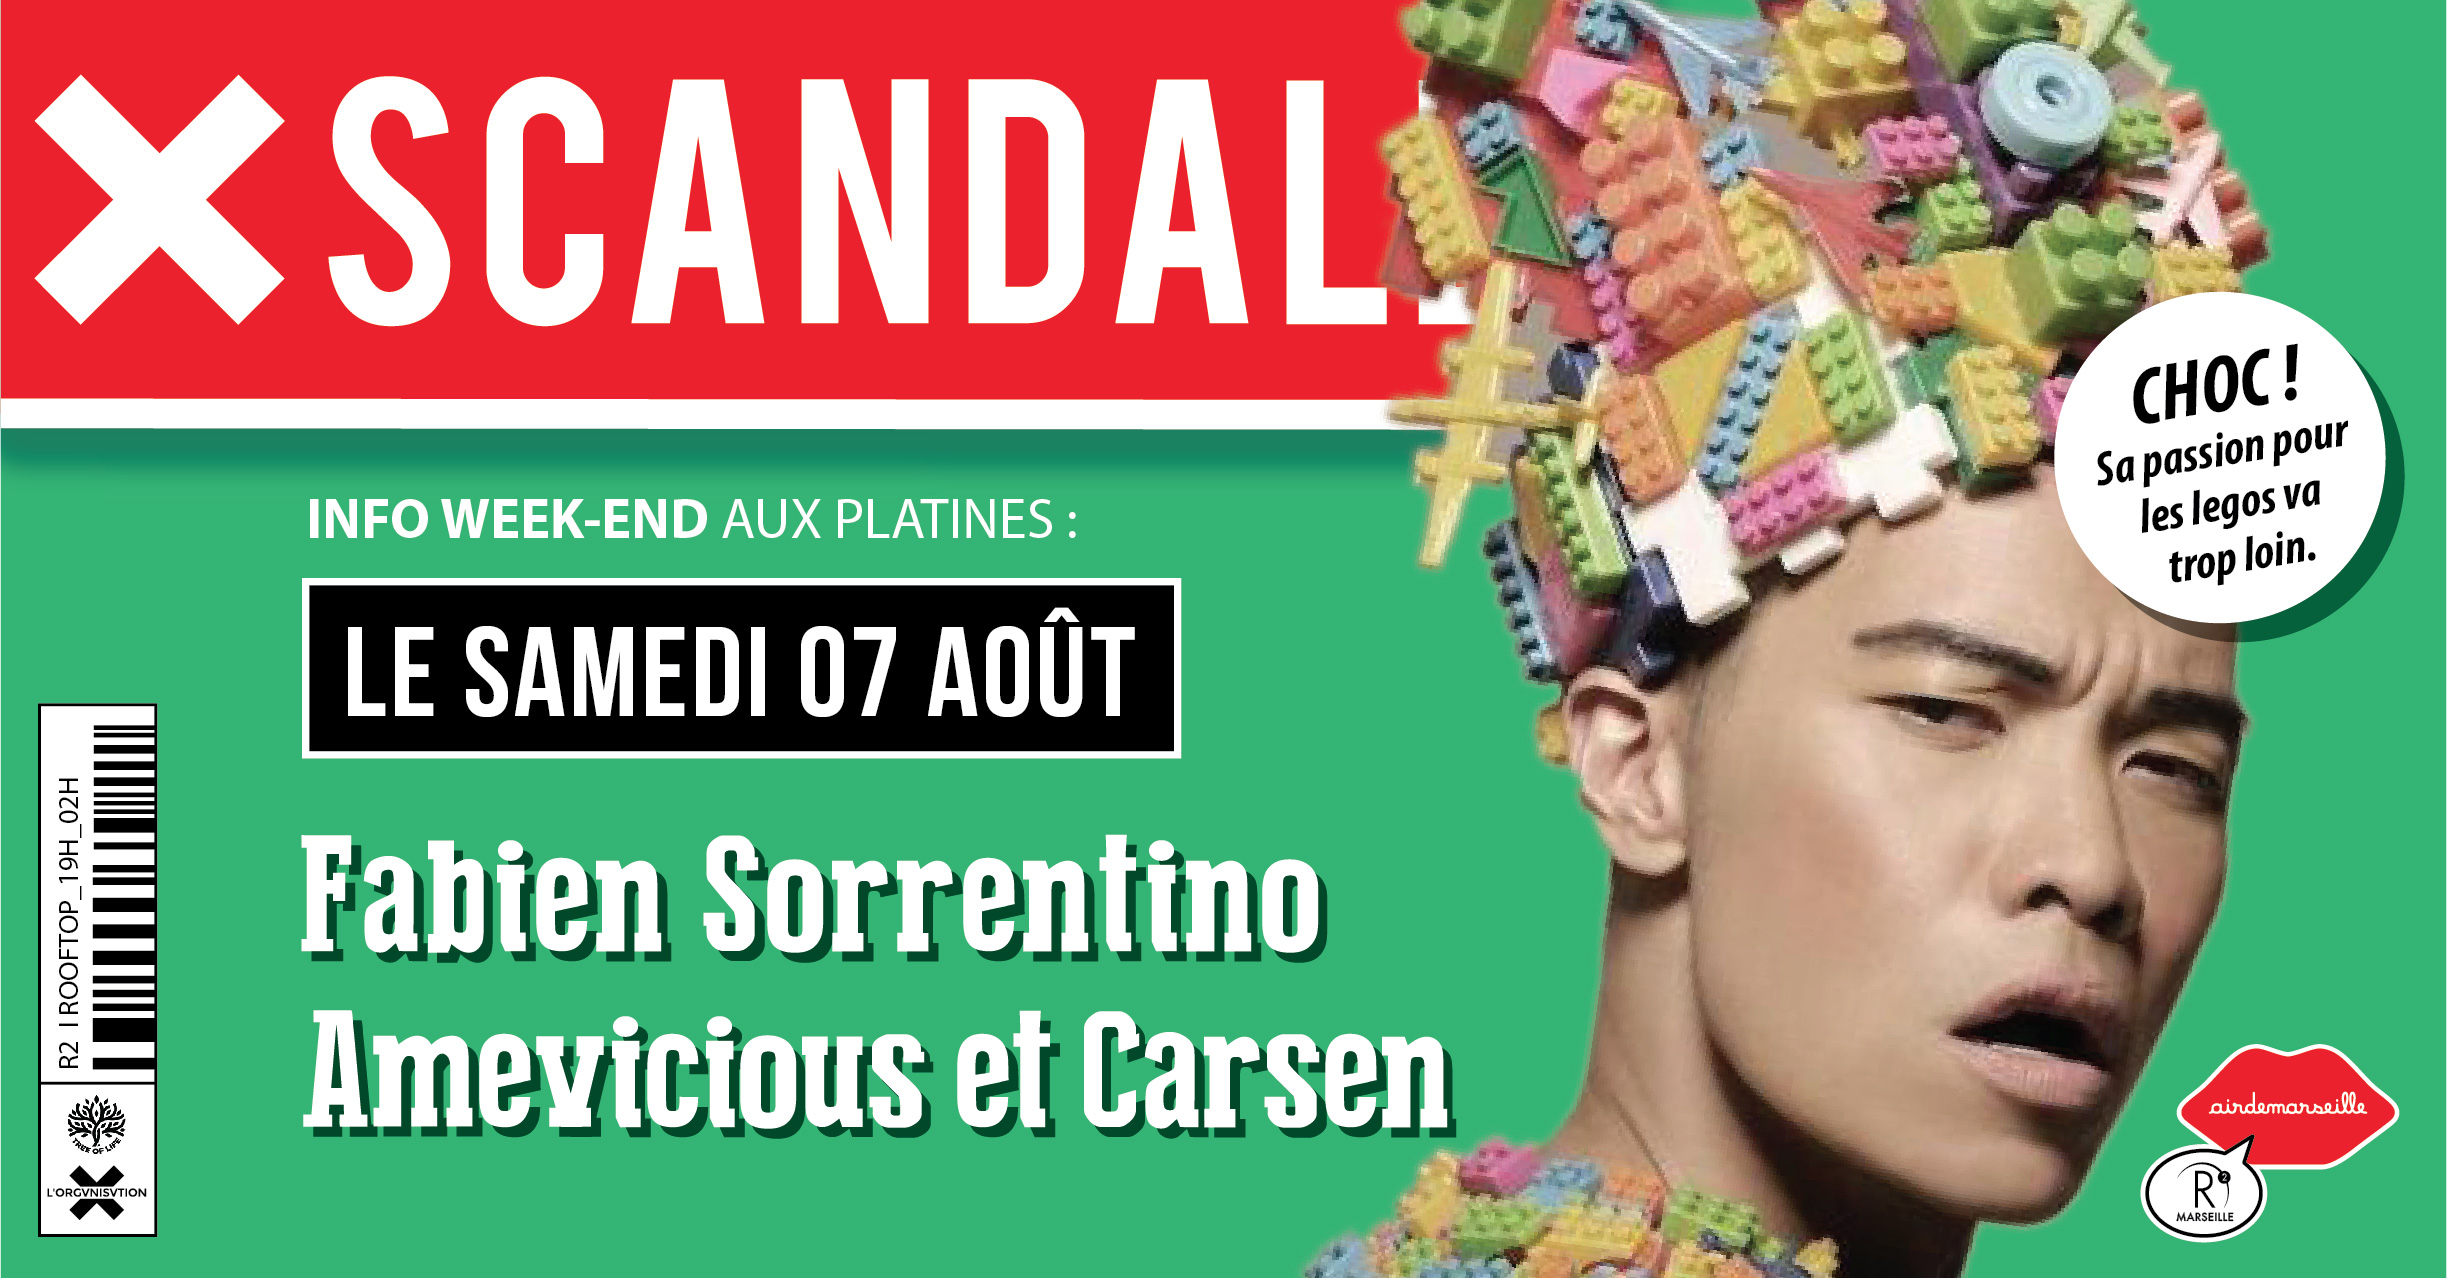 R2 ROOFTOP X SCANDALE - FABIEN SORRENTINO - AMEVICIOUS - CARSEN